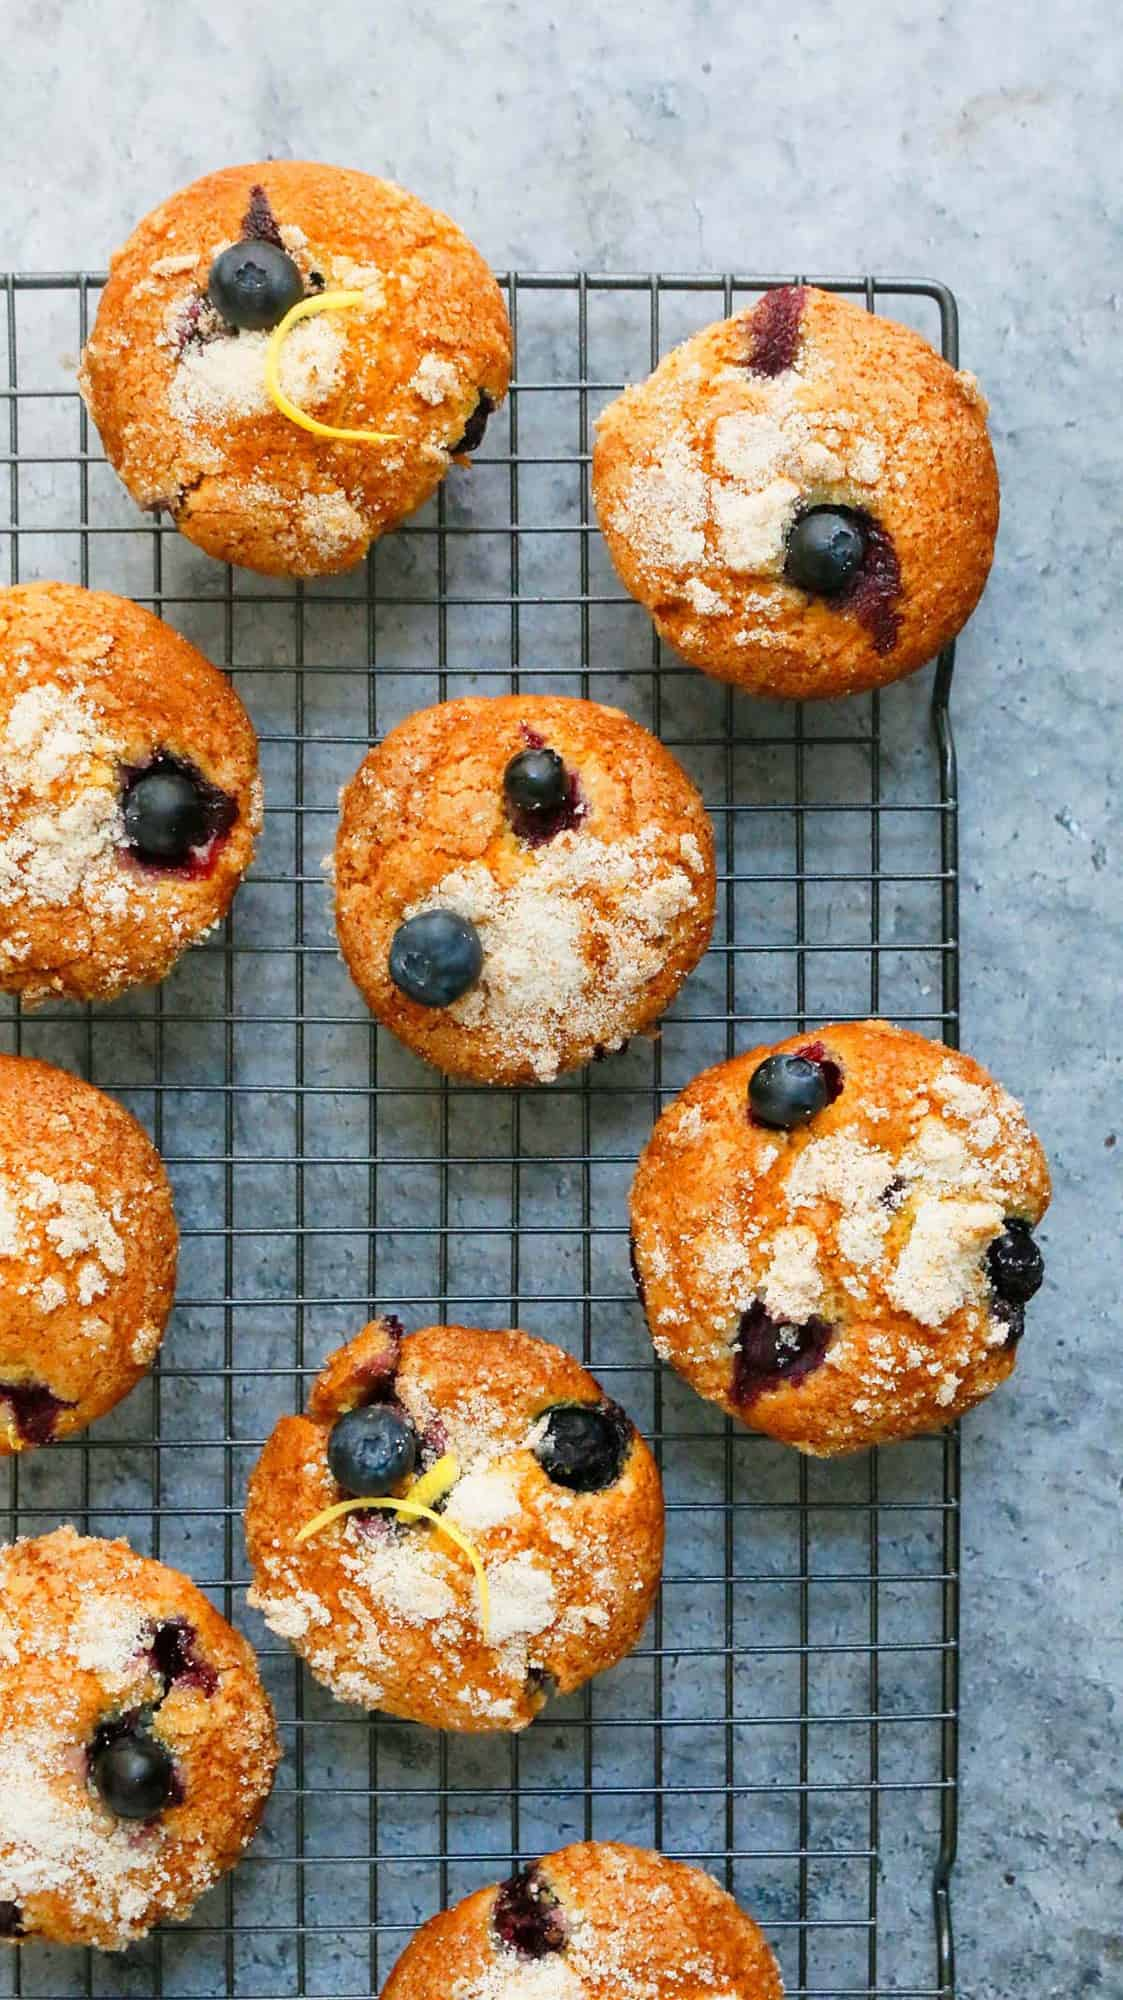 blueberry muffins placed on a wire rack